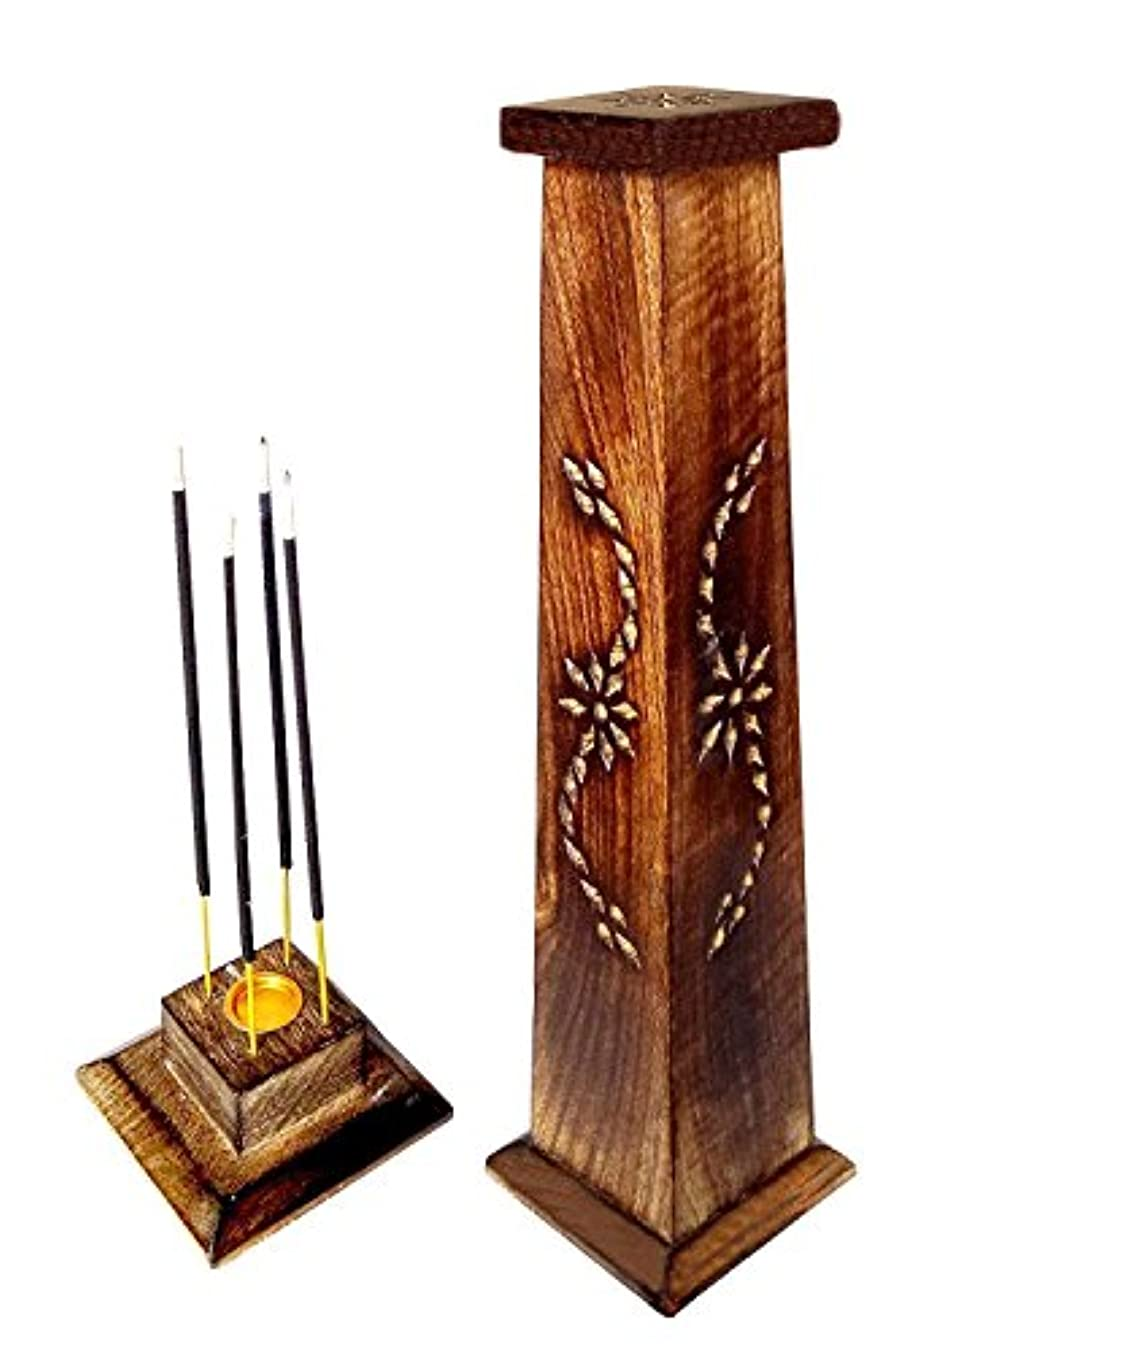 危機月面マイクロフォン木製香炉Ideal for Aromatherapy、禅、Spa、Vastu、レイキChakra Votive Candle Garden Incense Tower 12